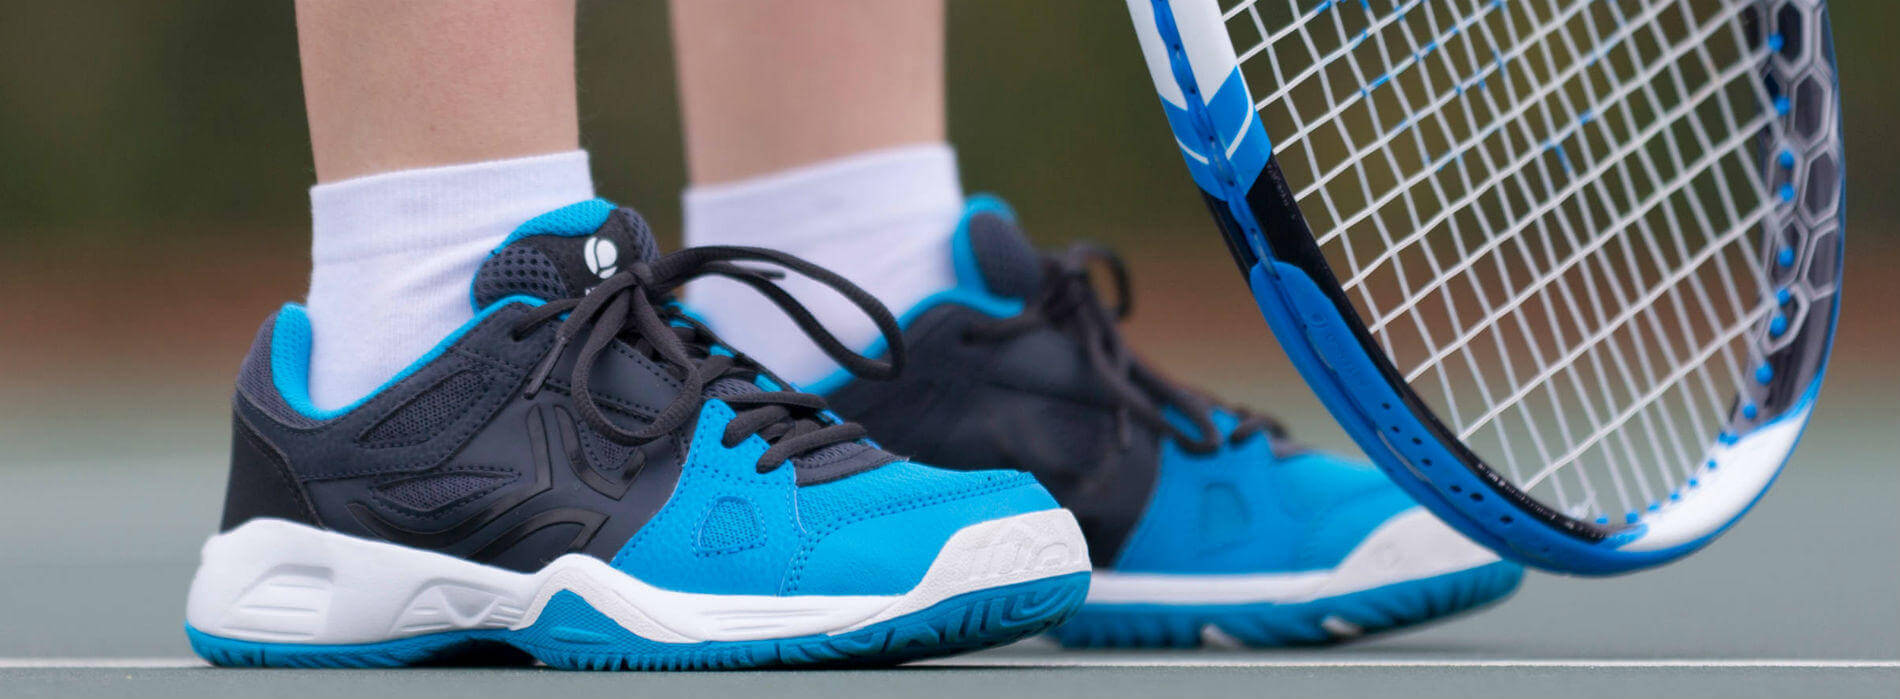 How to Choose Your Kids Tennis Shoes?